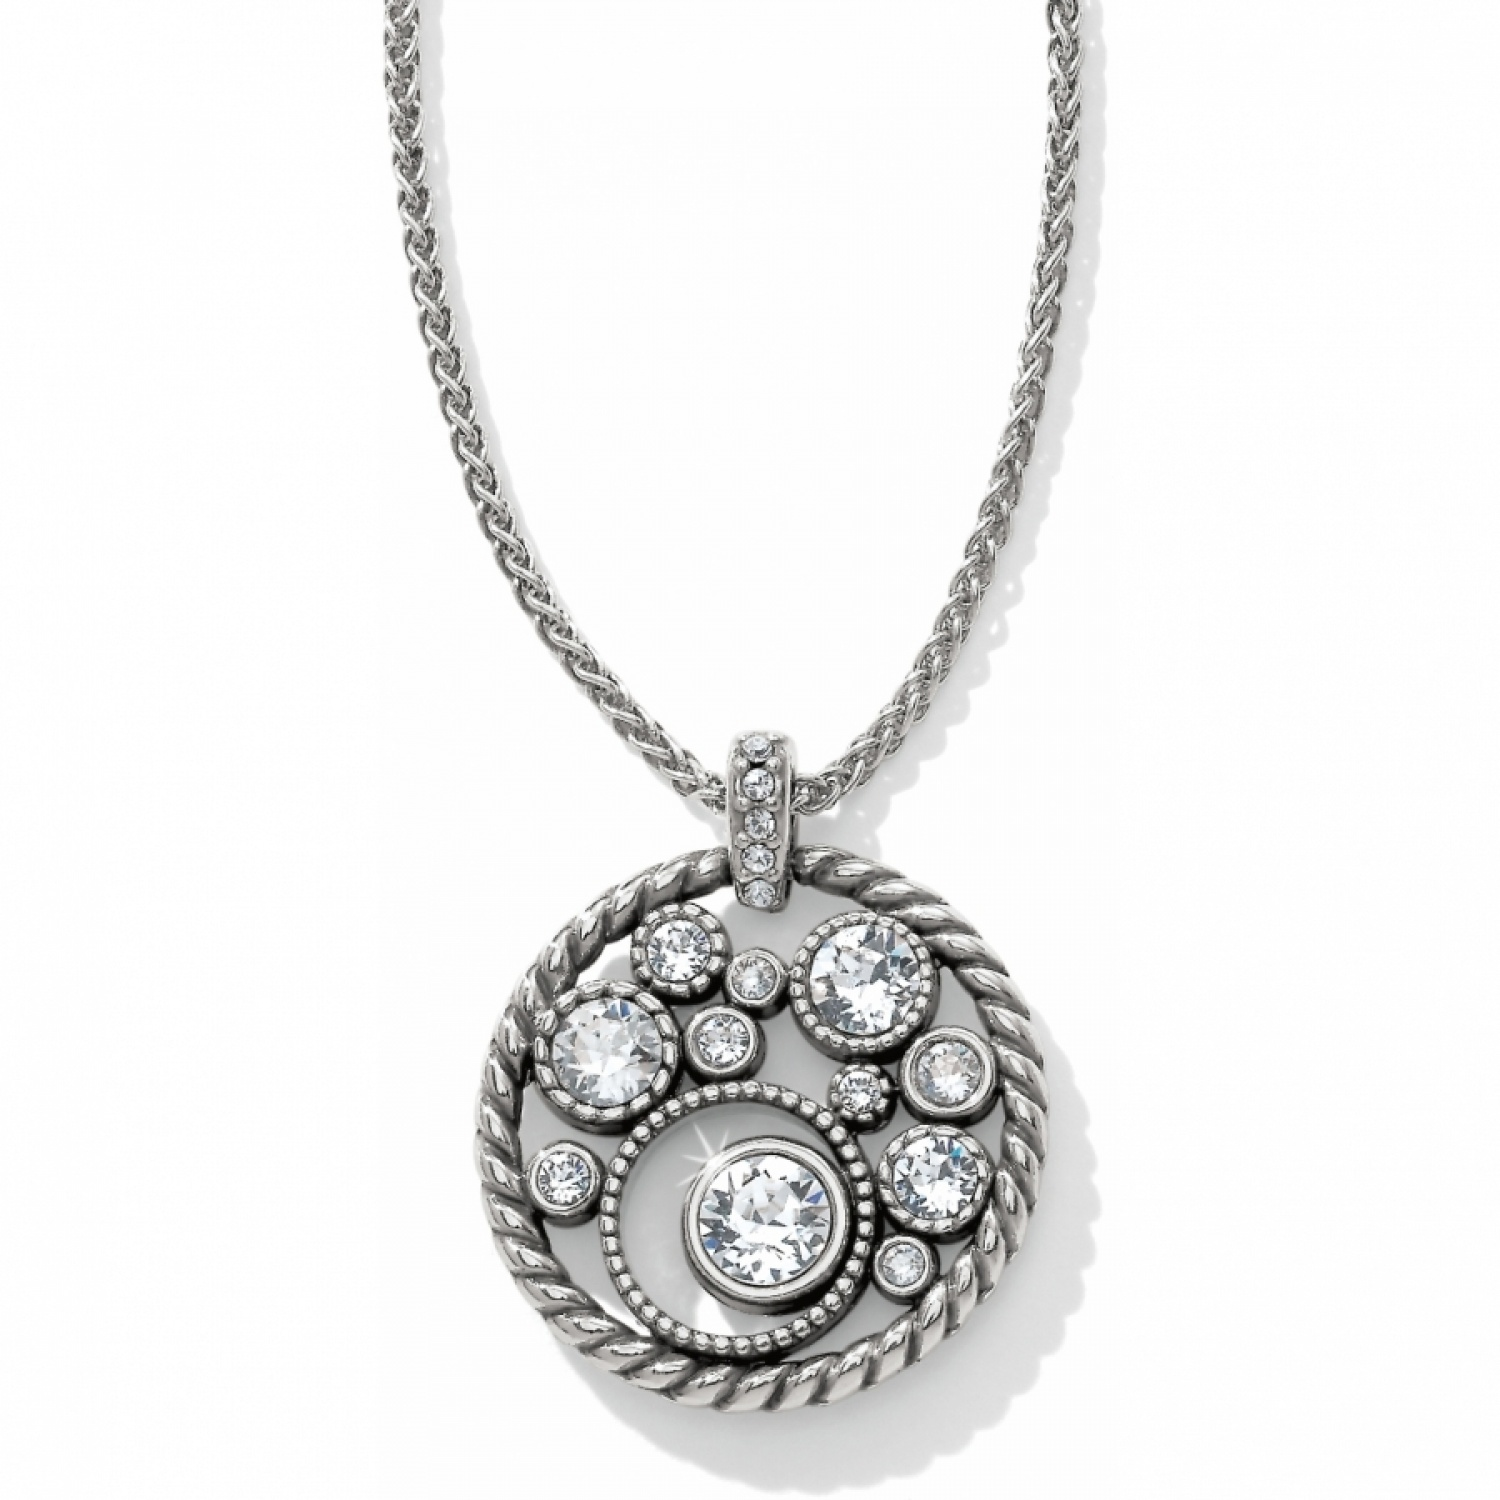 ad79058f95d Halo Necklace alternate view 1